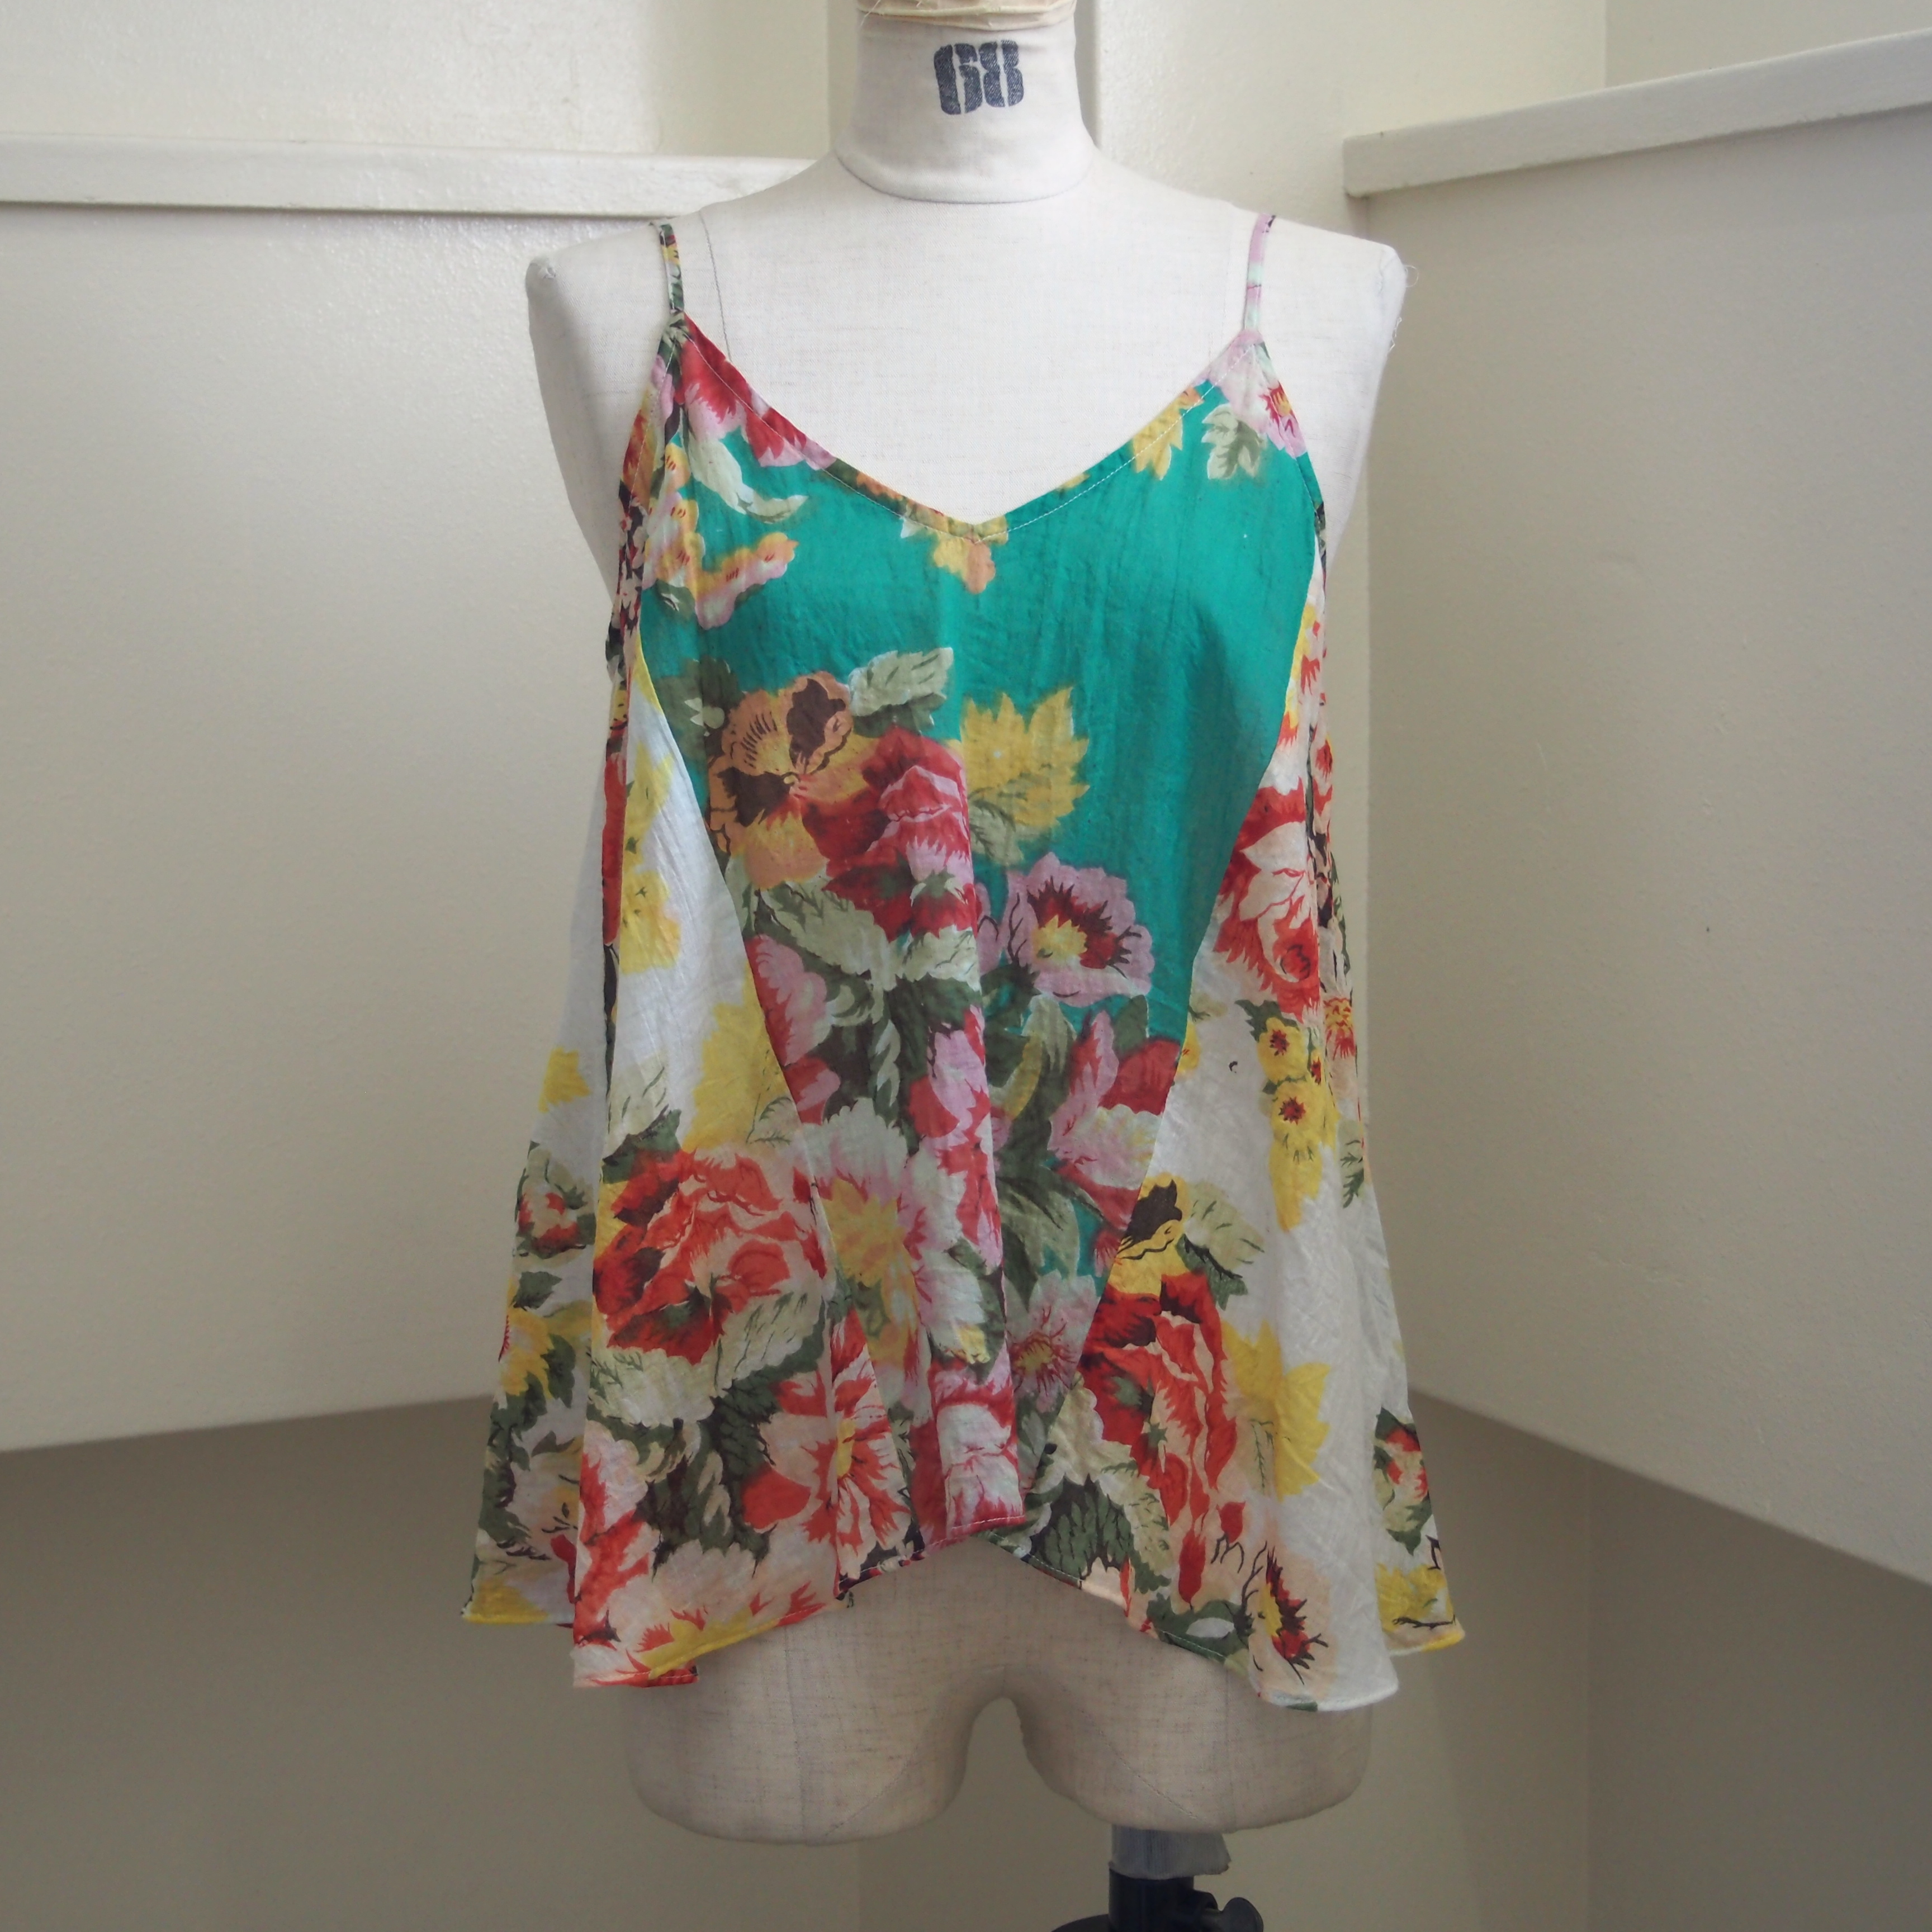 【ethical hippi】flower print camisole(A) / 【エシカル ヒッピ】フラワー プリント キャミソール(A)